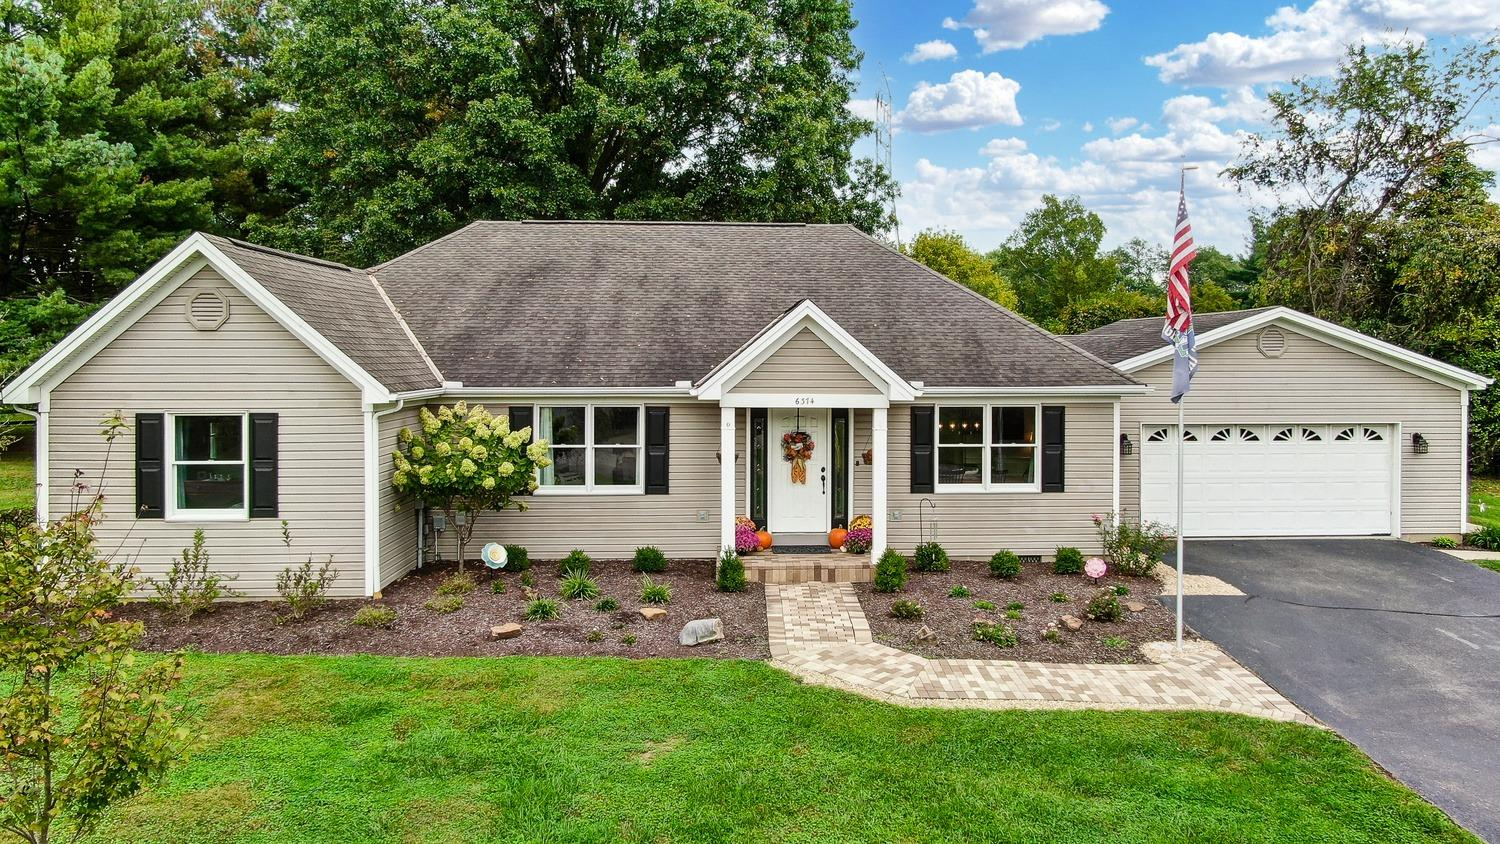 6374 Branch Hill Miamiville Rd, Loveland, Ohio 45140, 3 Bedrooms Bedrooms, 7 Rooms Rooms,2 BathroomsBathrooms,Single Family Residence,For Sale,Branch Hill Miamiville Rd,1718615